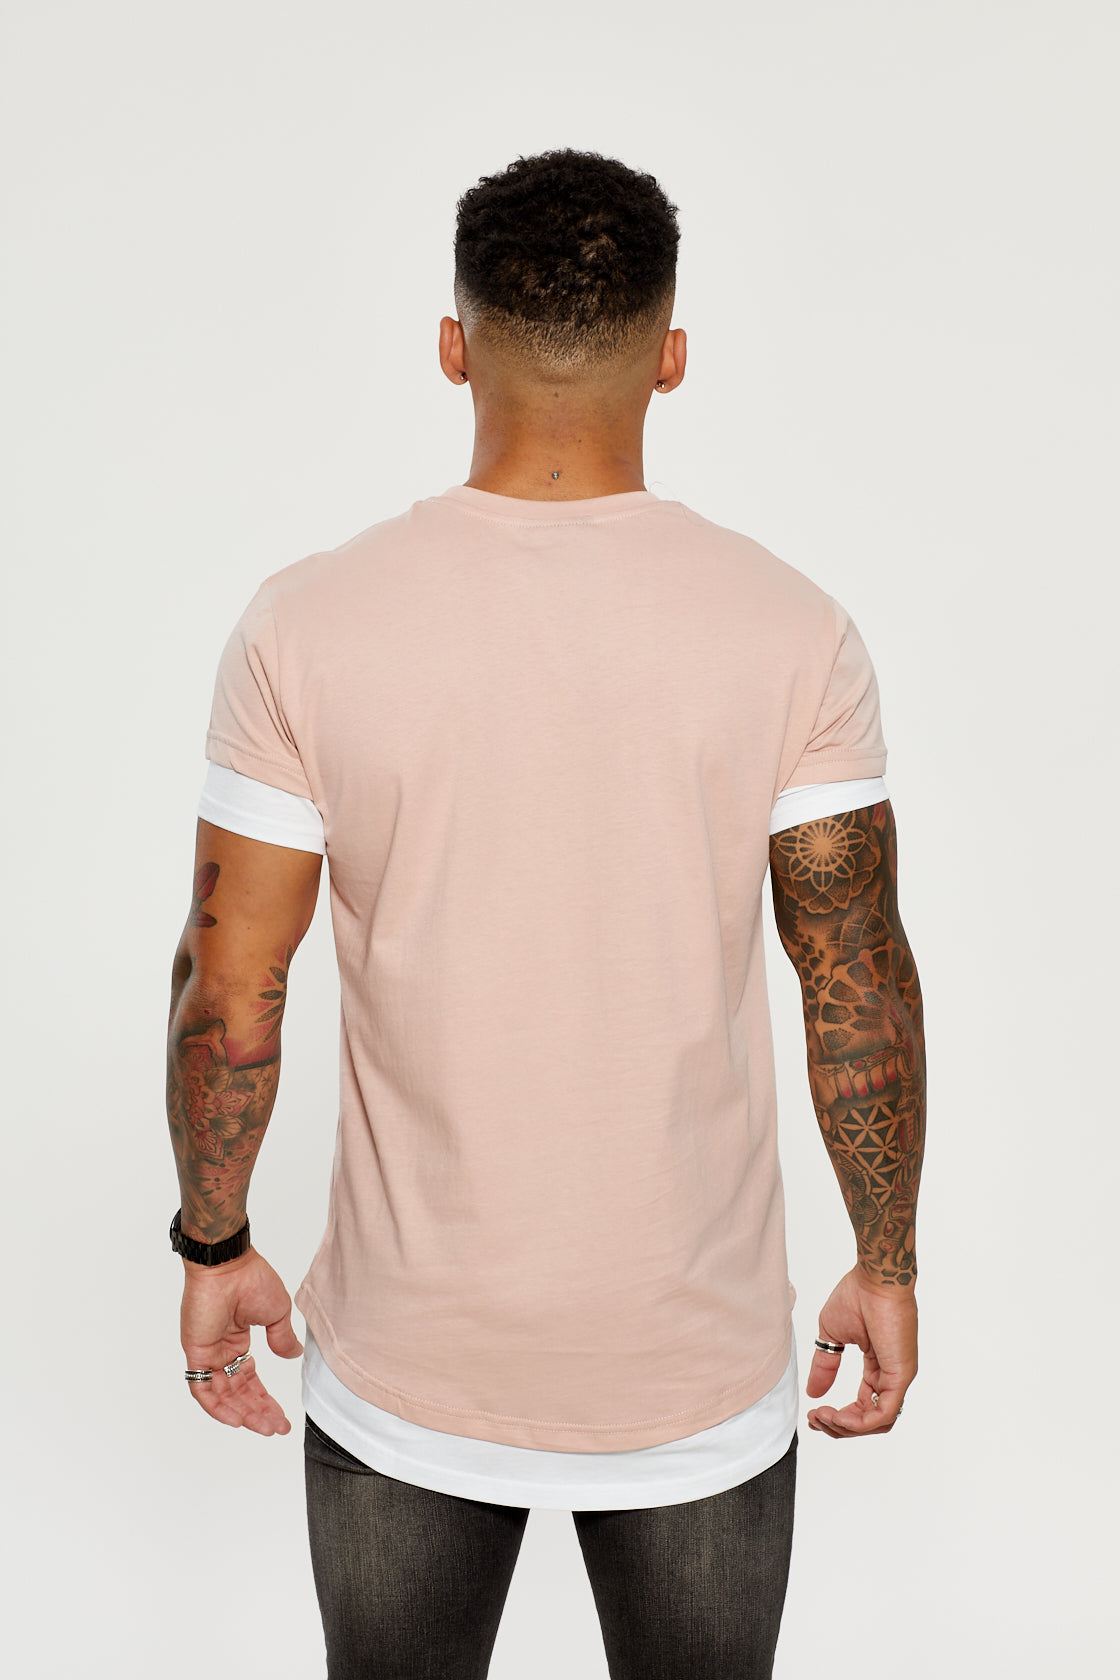 Contrast Tee - Dusty Pink / White